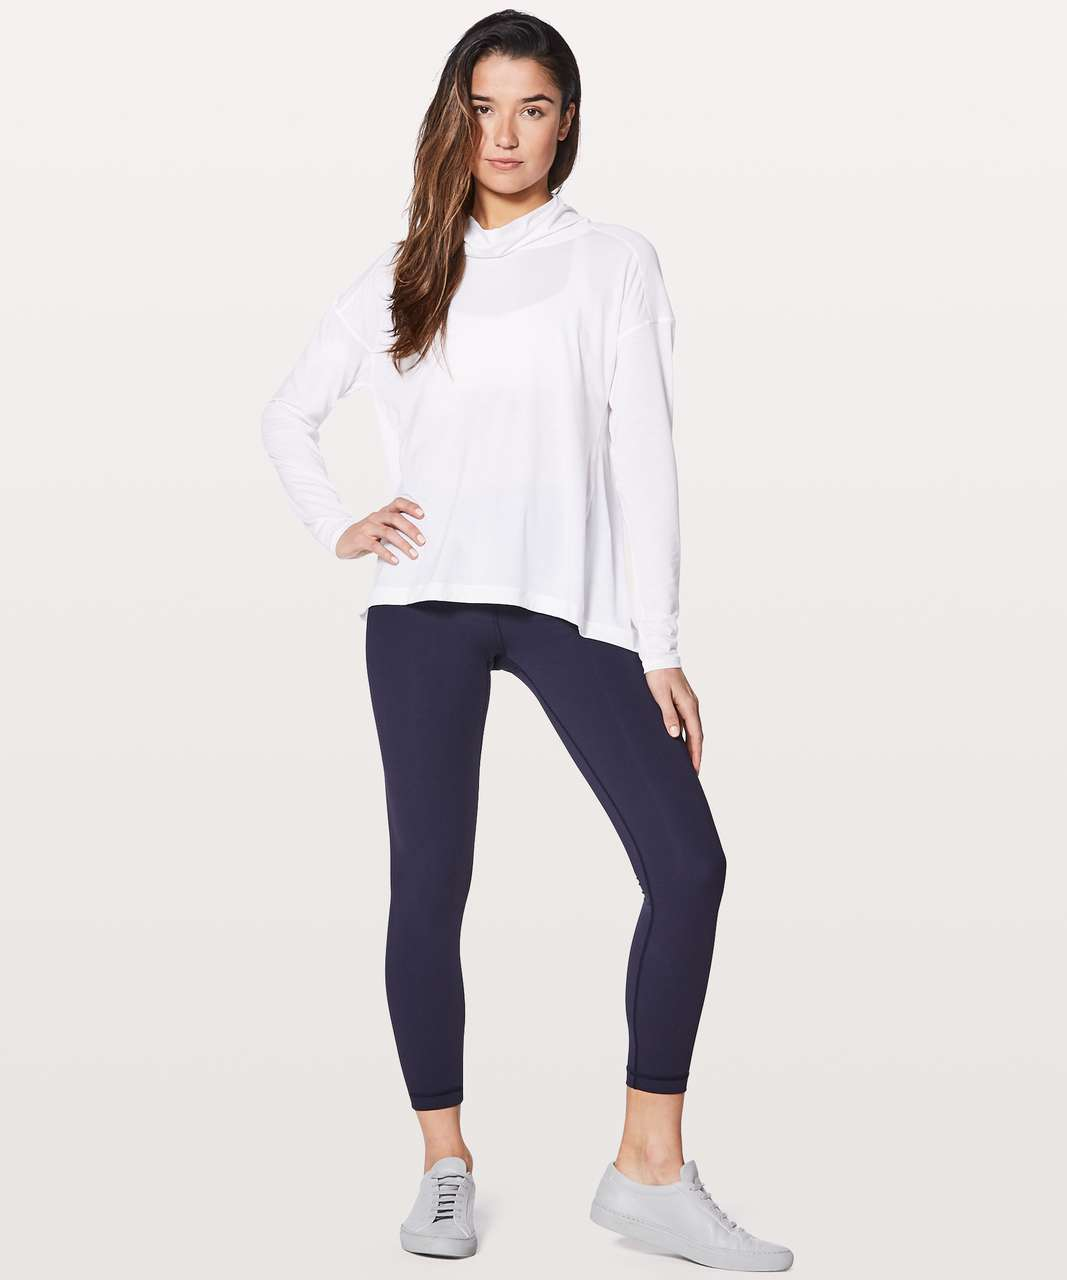 Lululemon See You In Savasana Long Sleeve - Heathered White